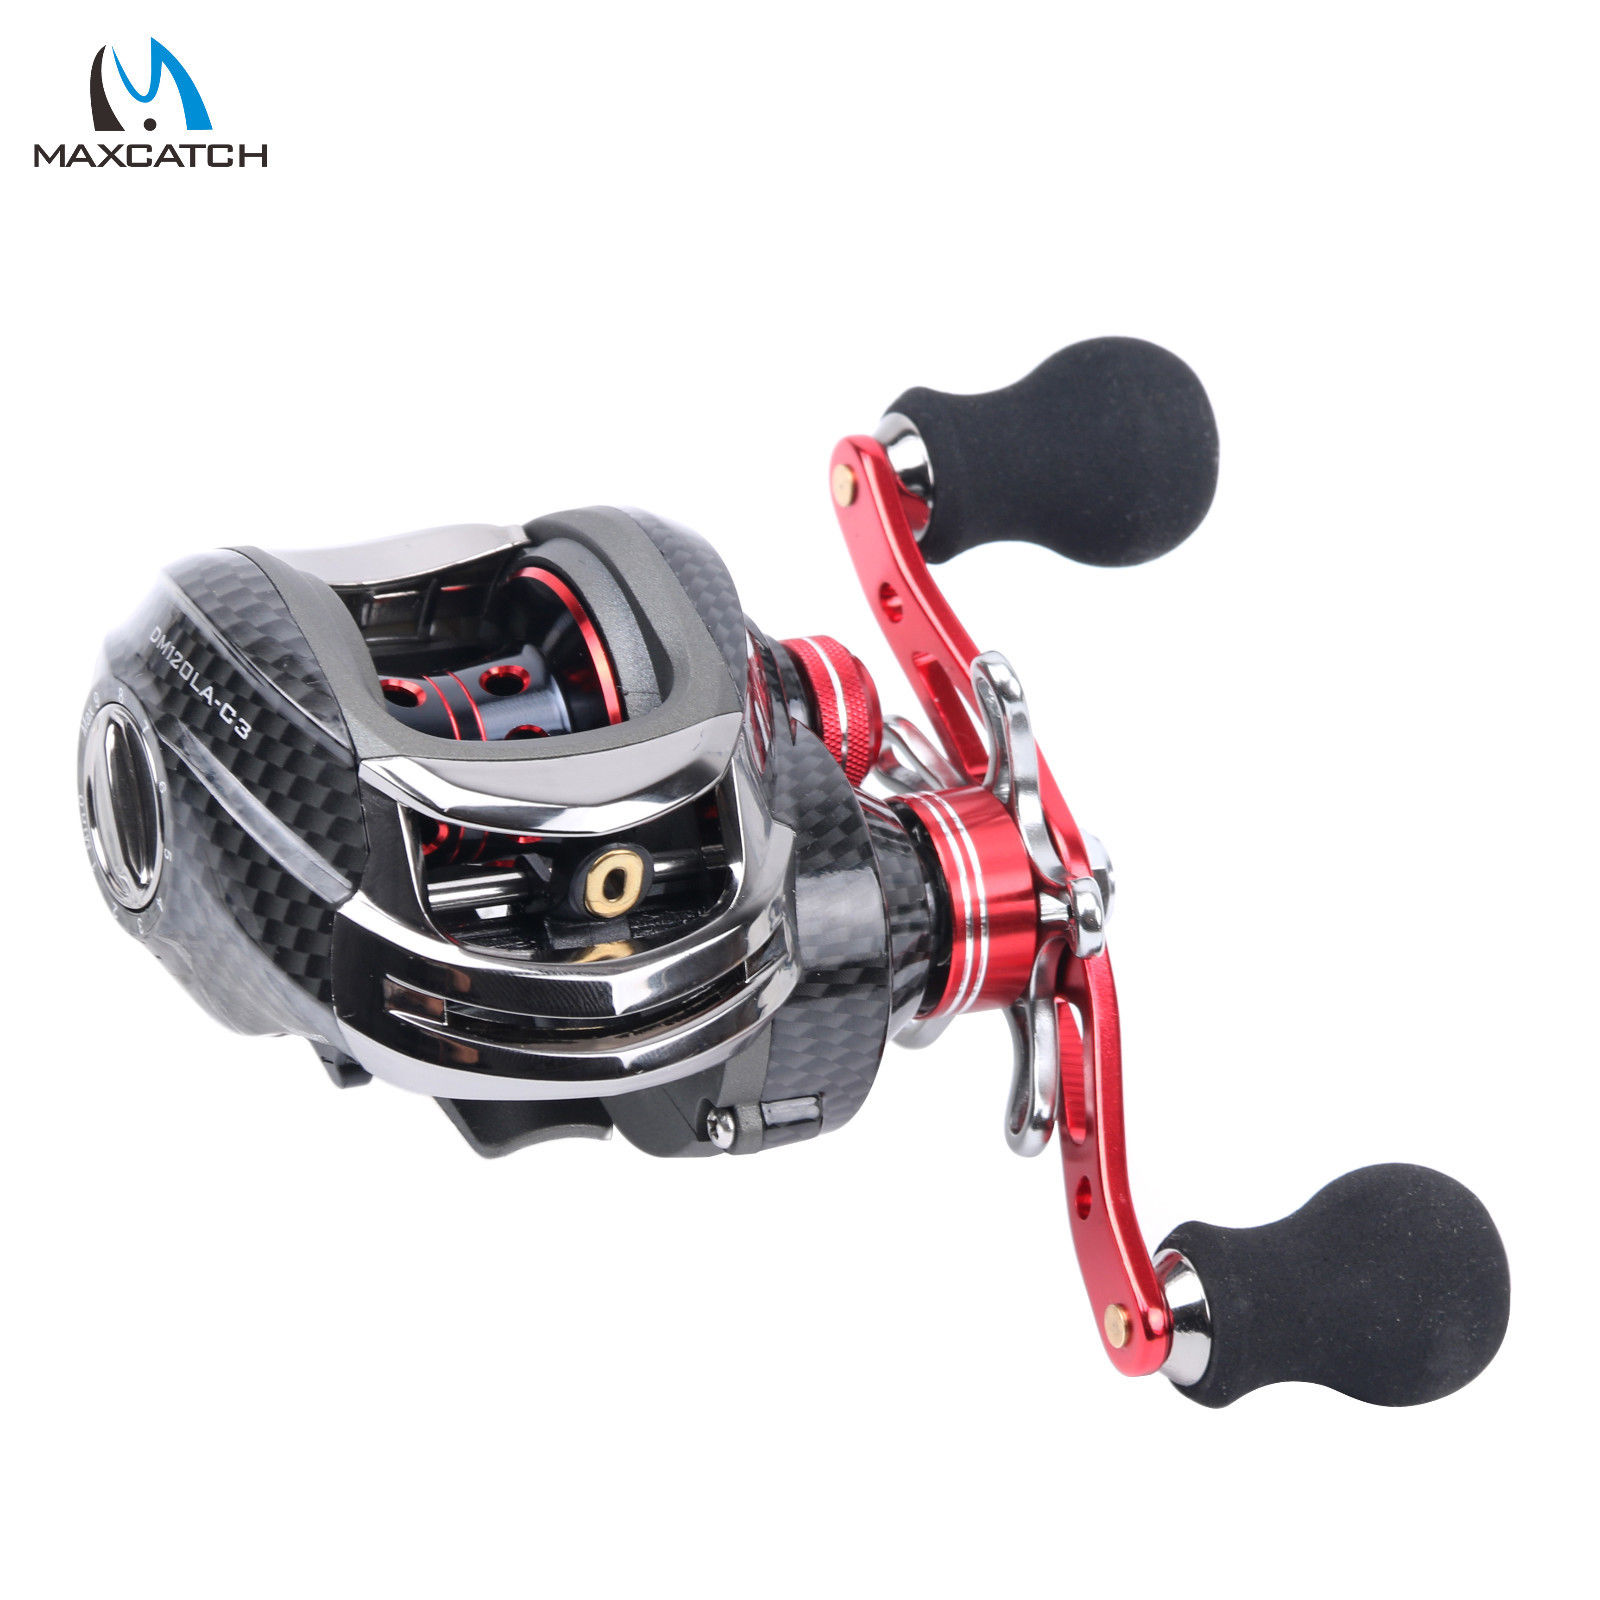 Baitcasting Fishing Reel Right Hand 6.3:1 11+1 Ball Bearings Casting Reel